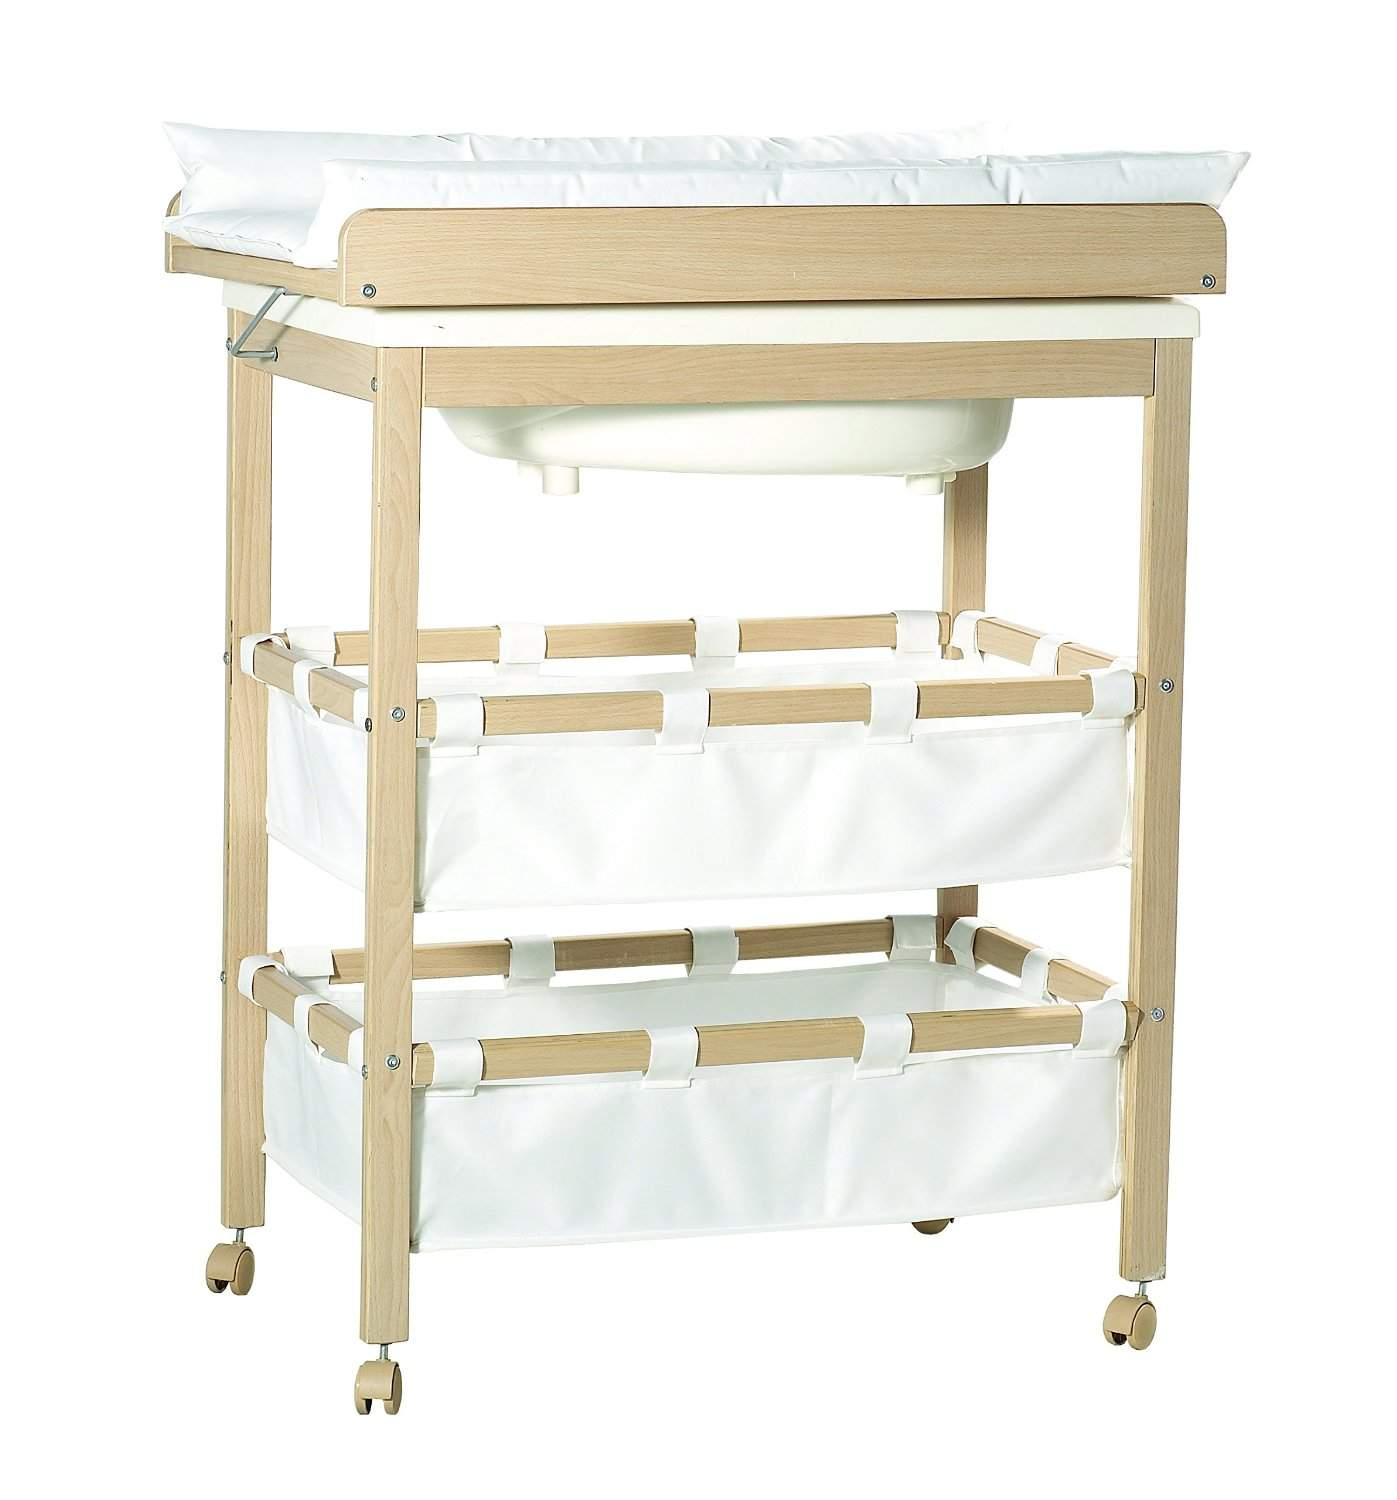 Ikea Folding Table With Chairs Inside ~ Bade Wickel Kombi  Wickelauflage seitlich schwenkbar